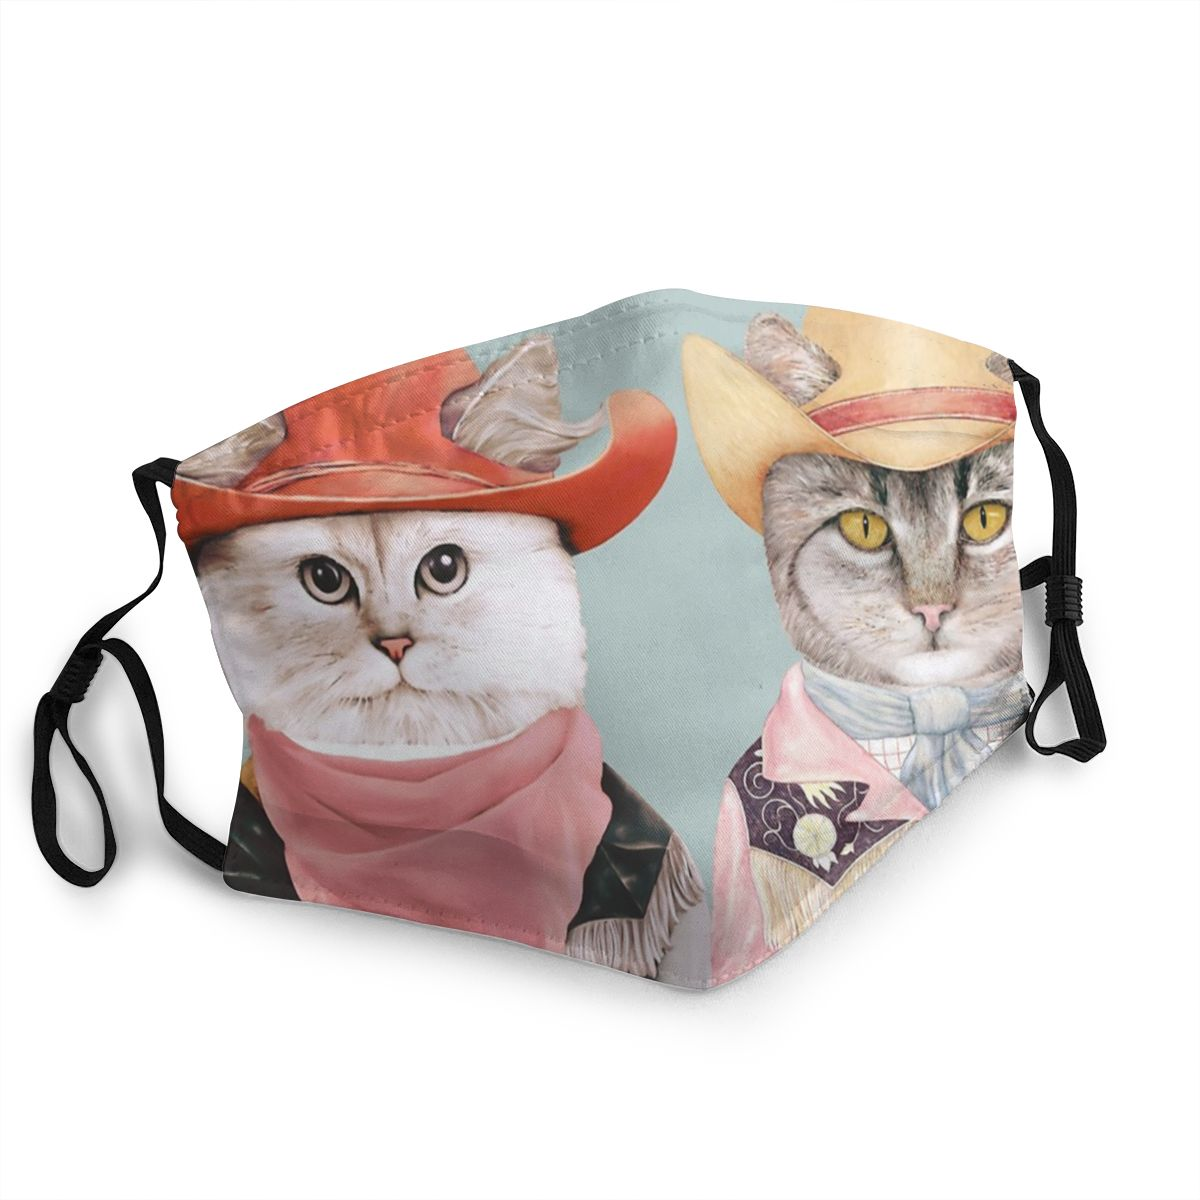 Cowboy Cats Non-Disposable Mouth Face Mask Printed Anti Haze Dustproof Mask Protection Cover Respirator Mouth Muffle